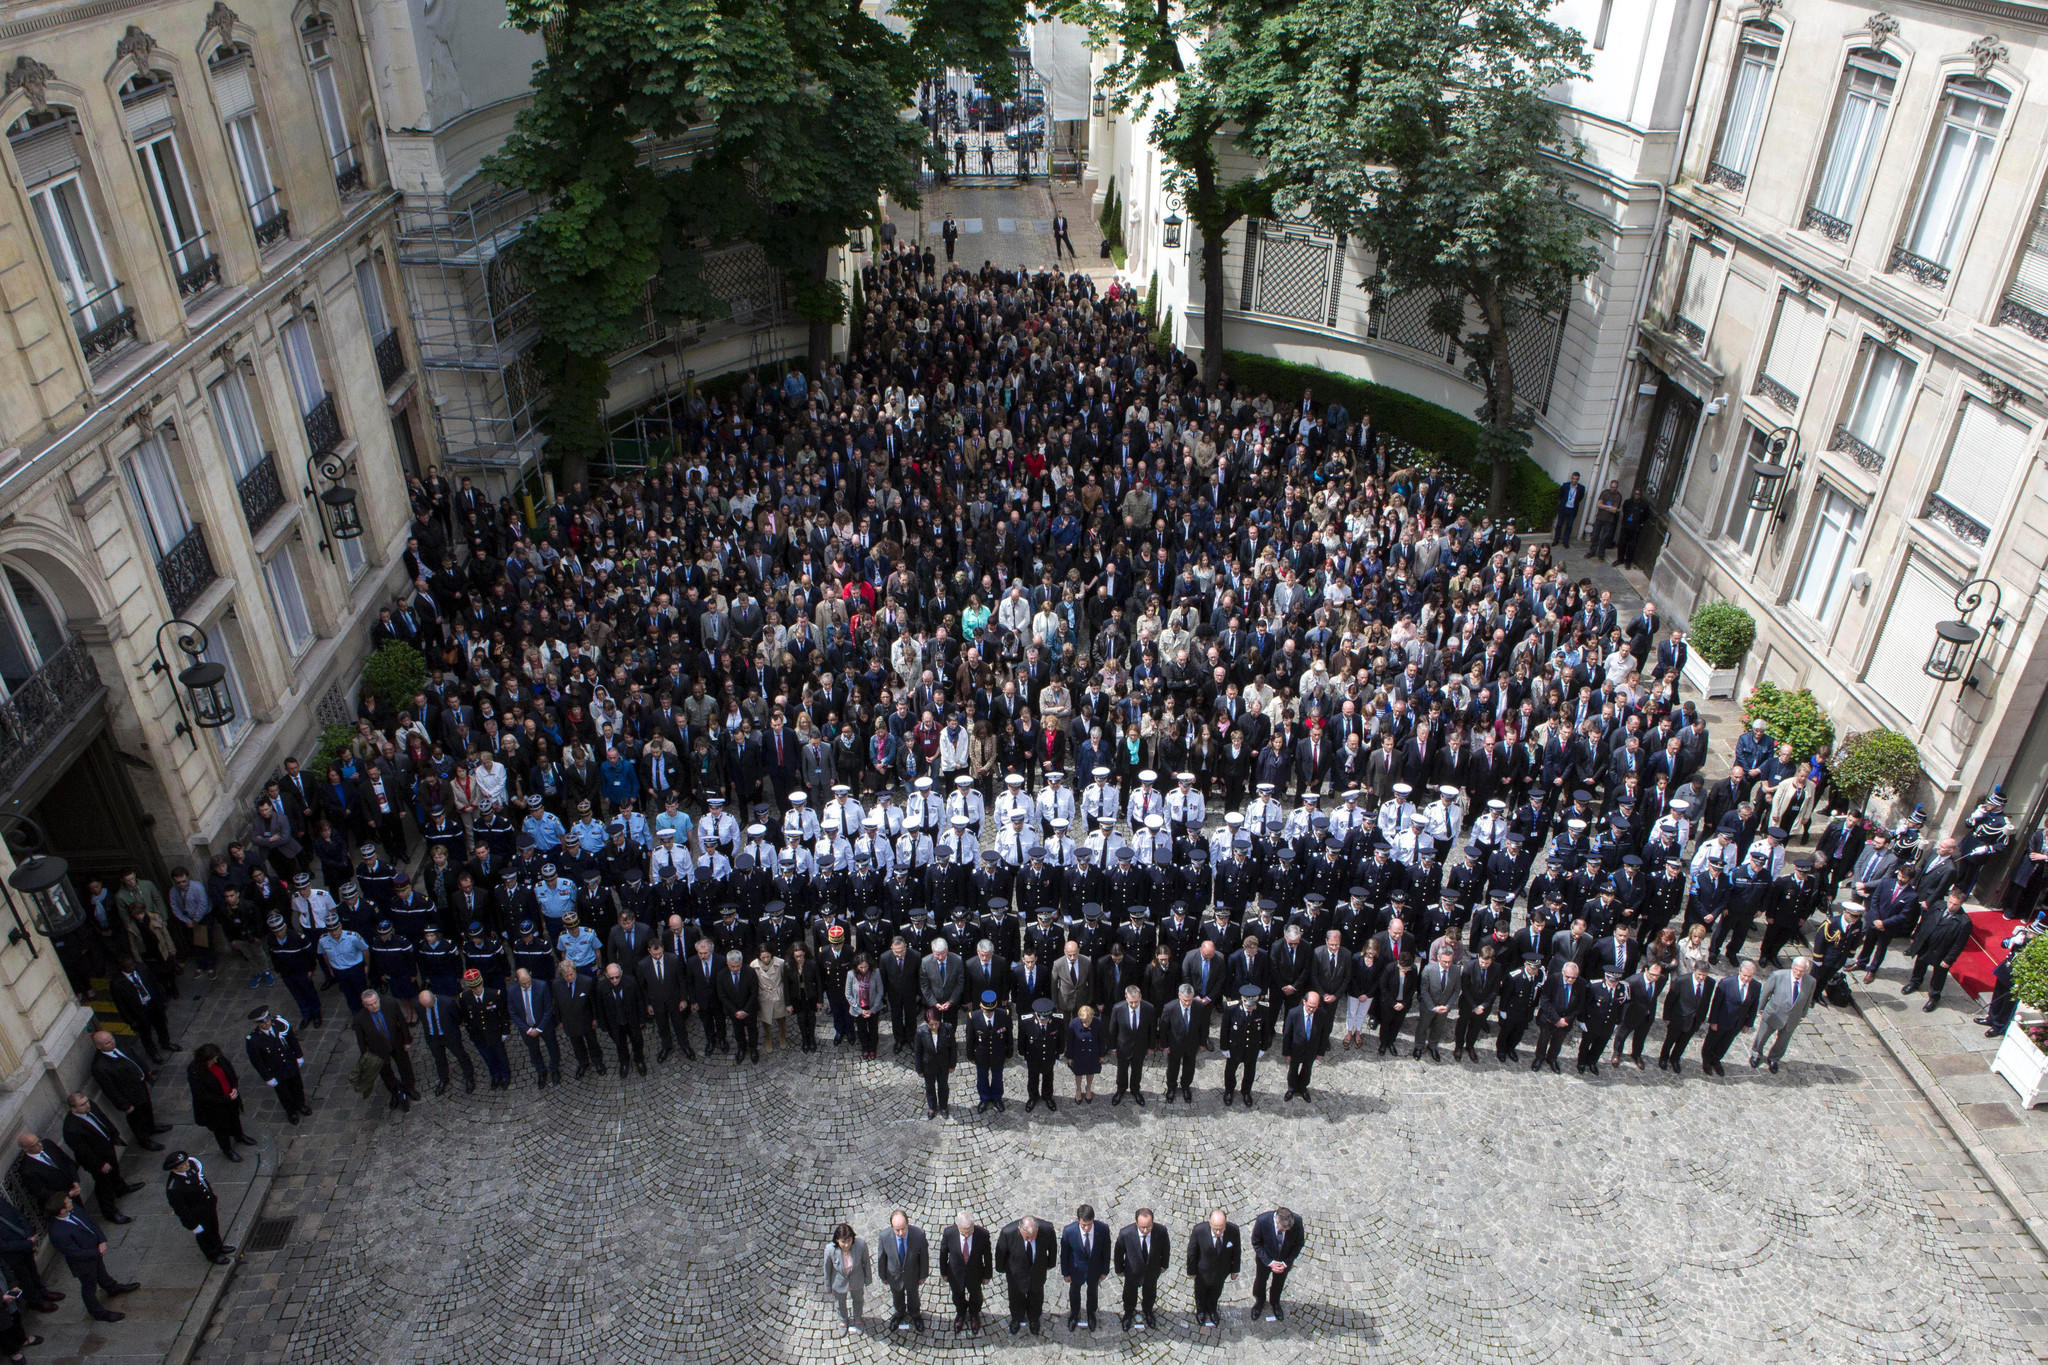 Ceremony to pay tribute to a French policeman and his wife, who were killed.